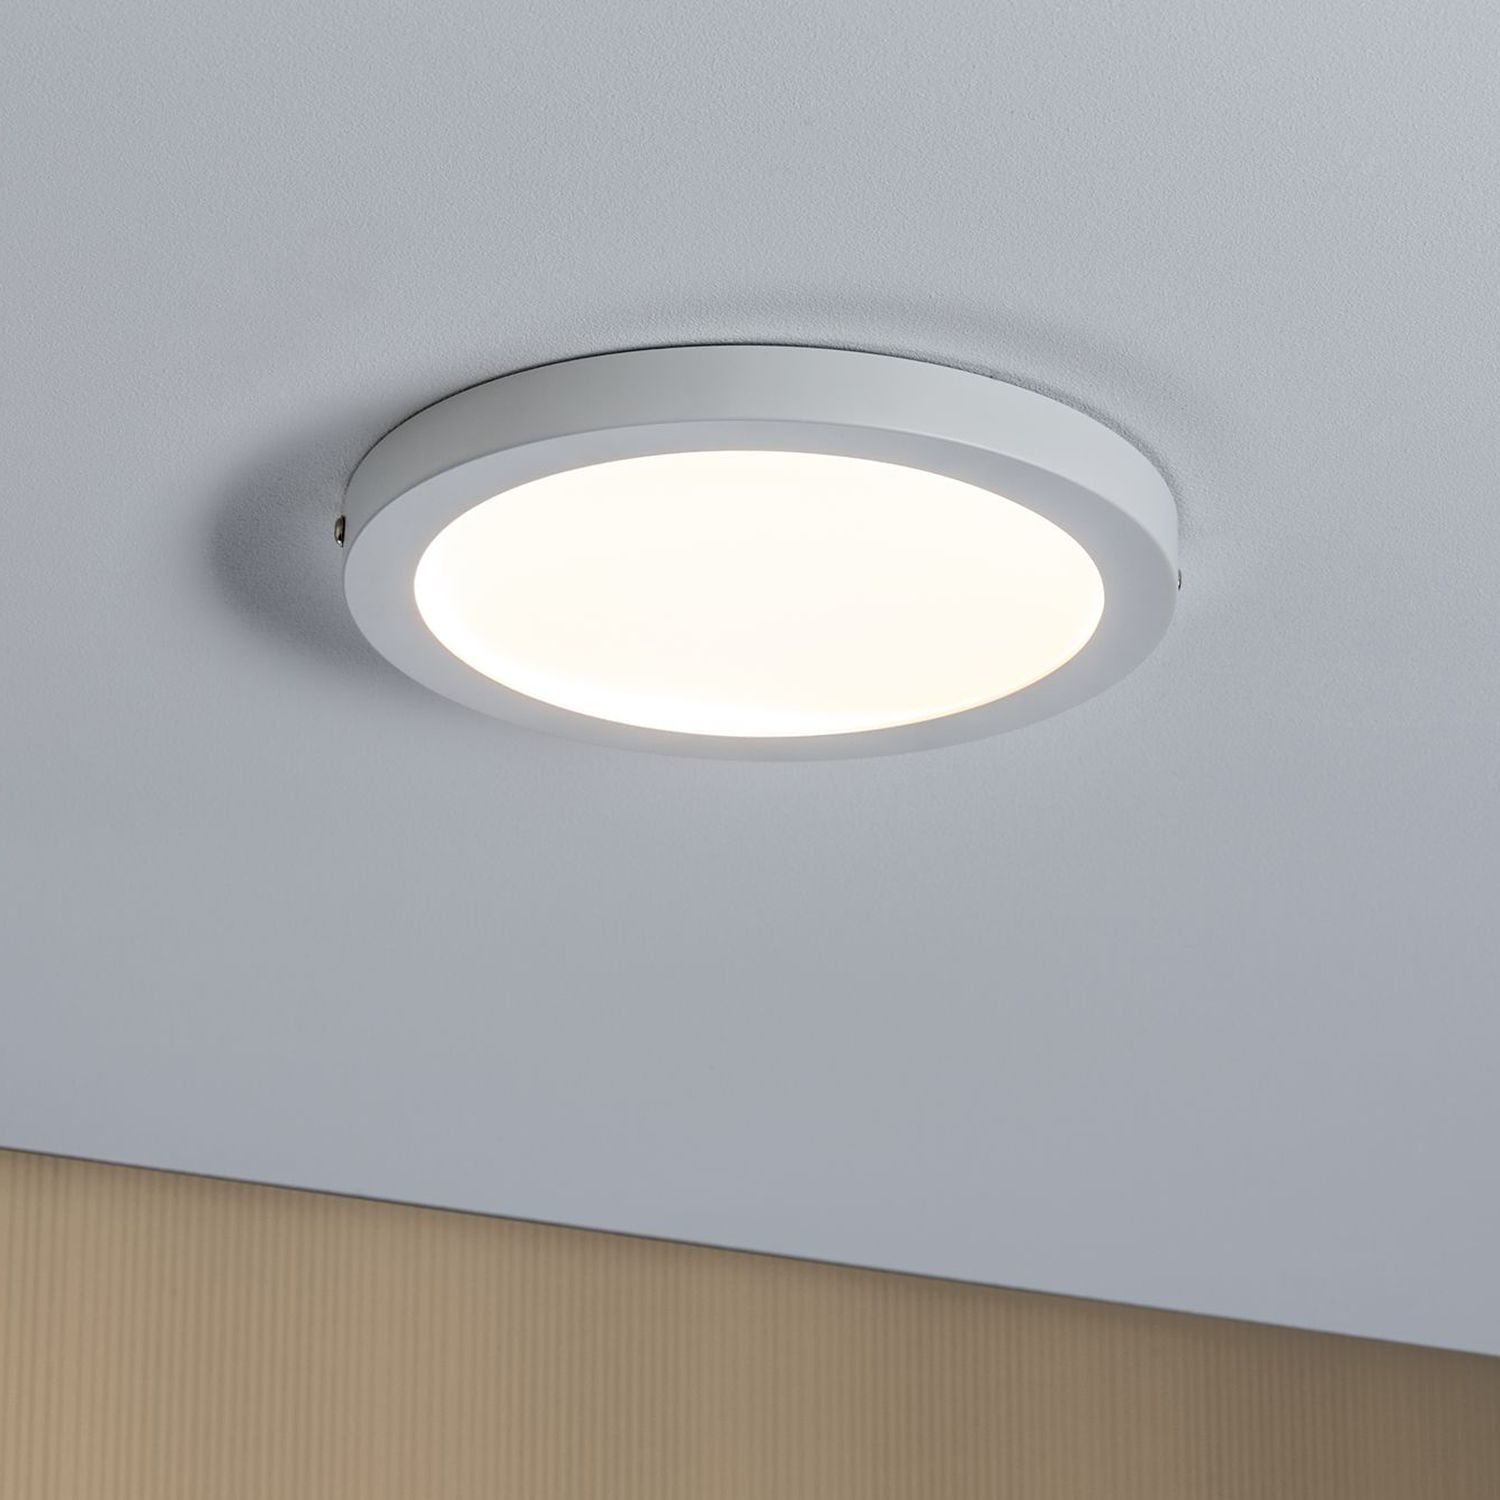 home24 LED-Deckenleuchte Panel V